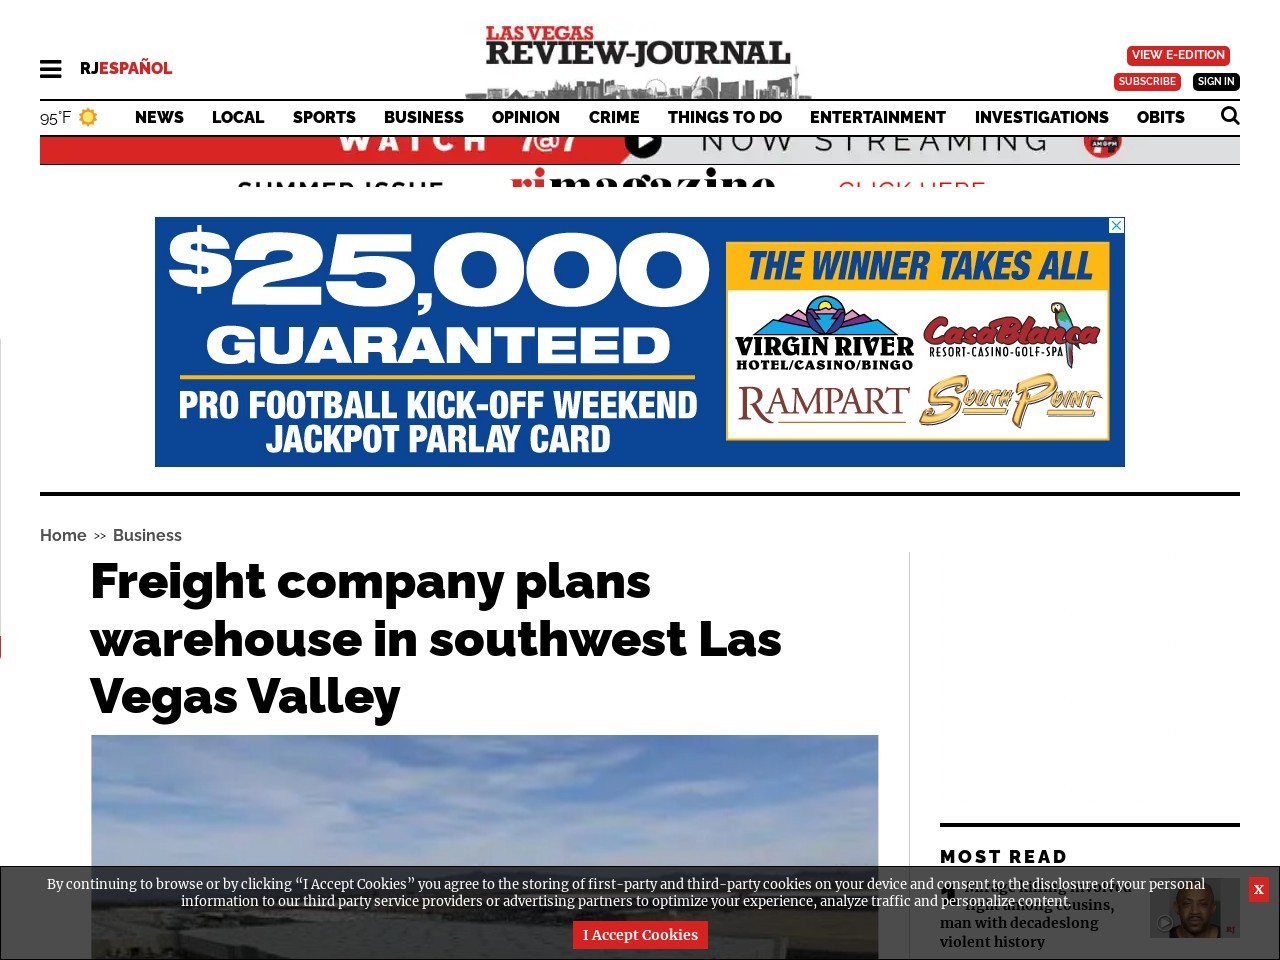 Freight company plans 70,ooo-square-foot warehouse in southwest Las Vegas Valley